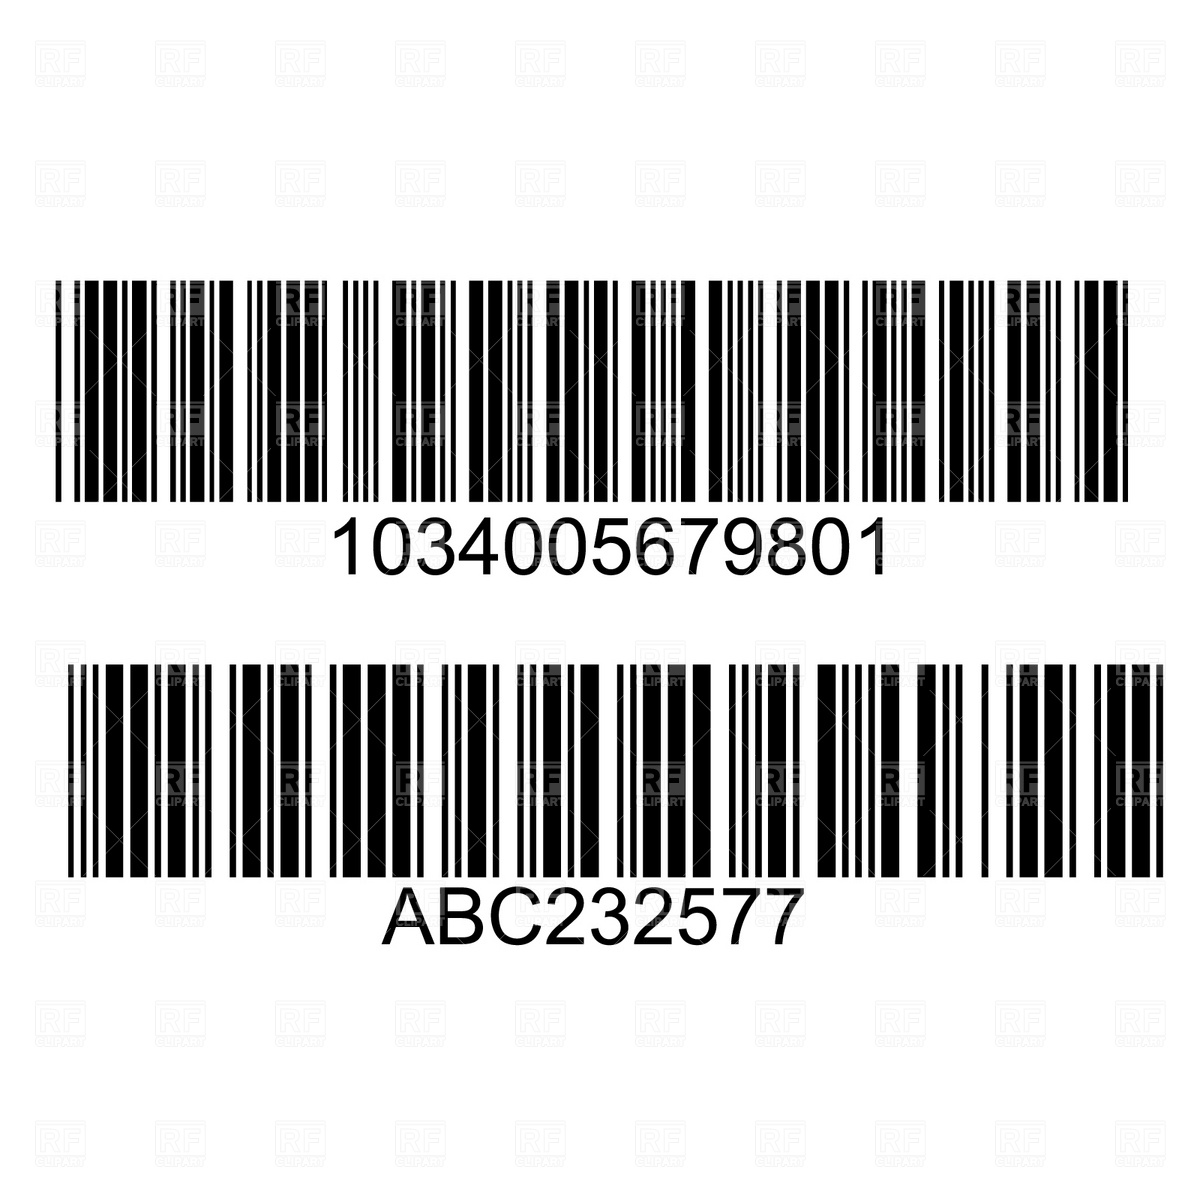 Barcode F Clipart.